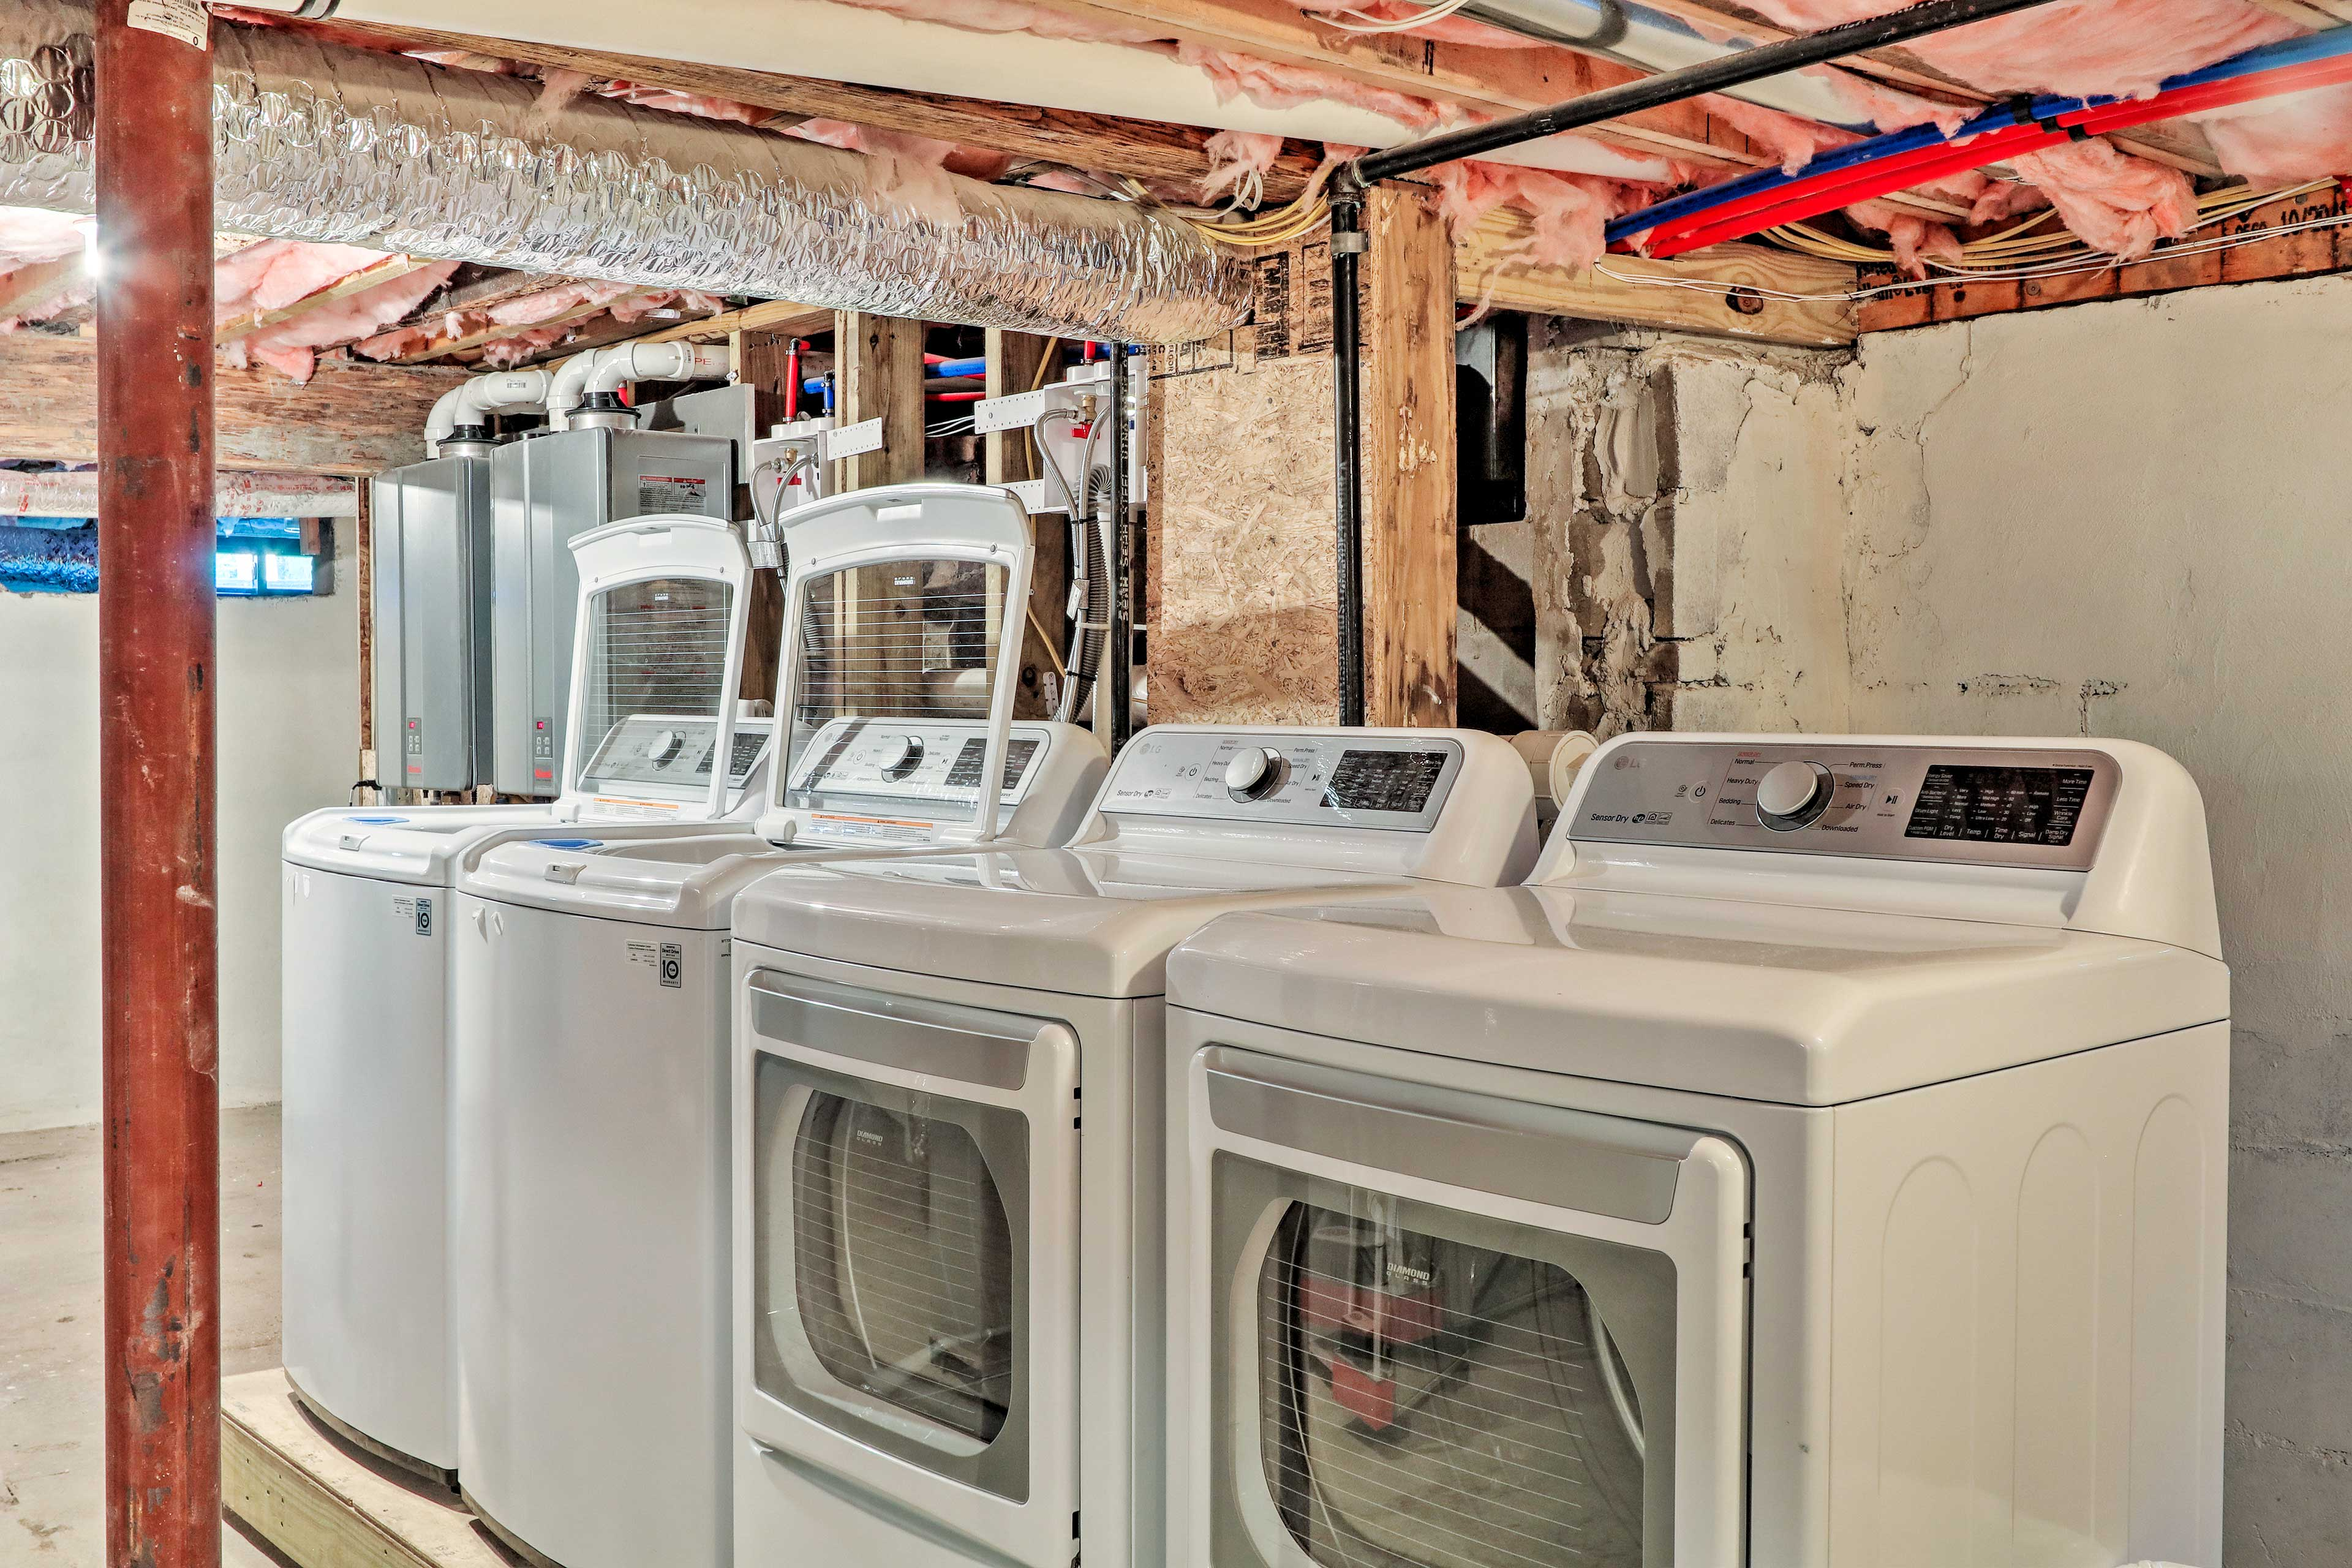 Keep clothes fresh with 2 sets of laundry machines.